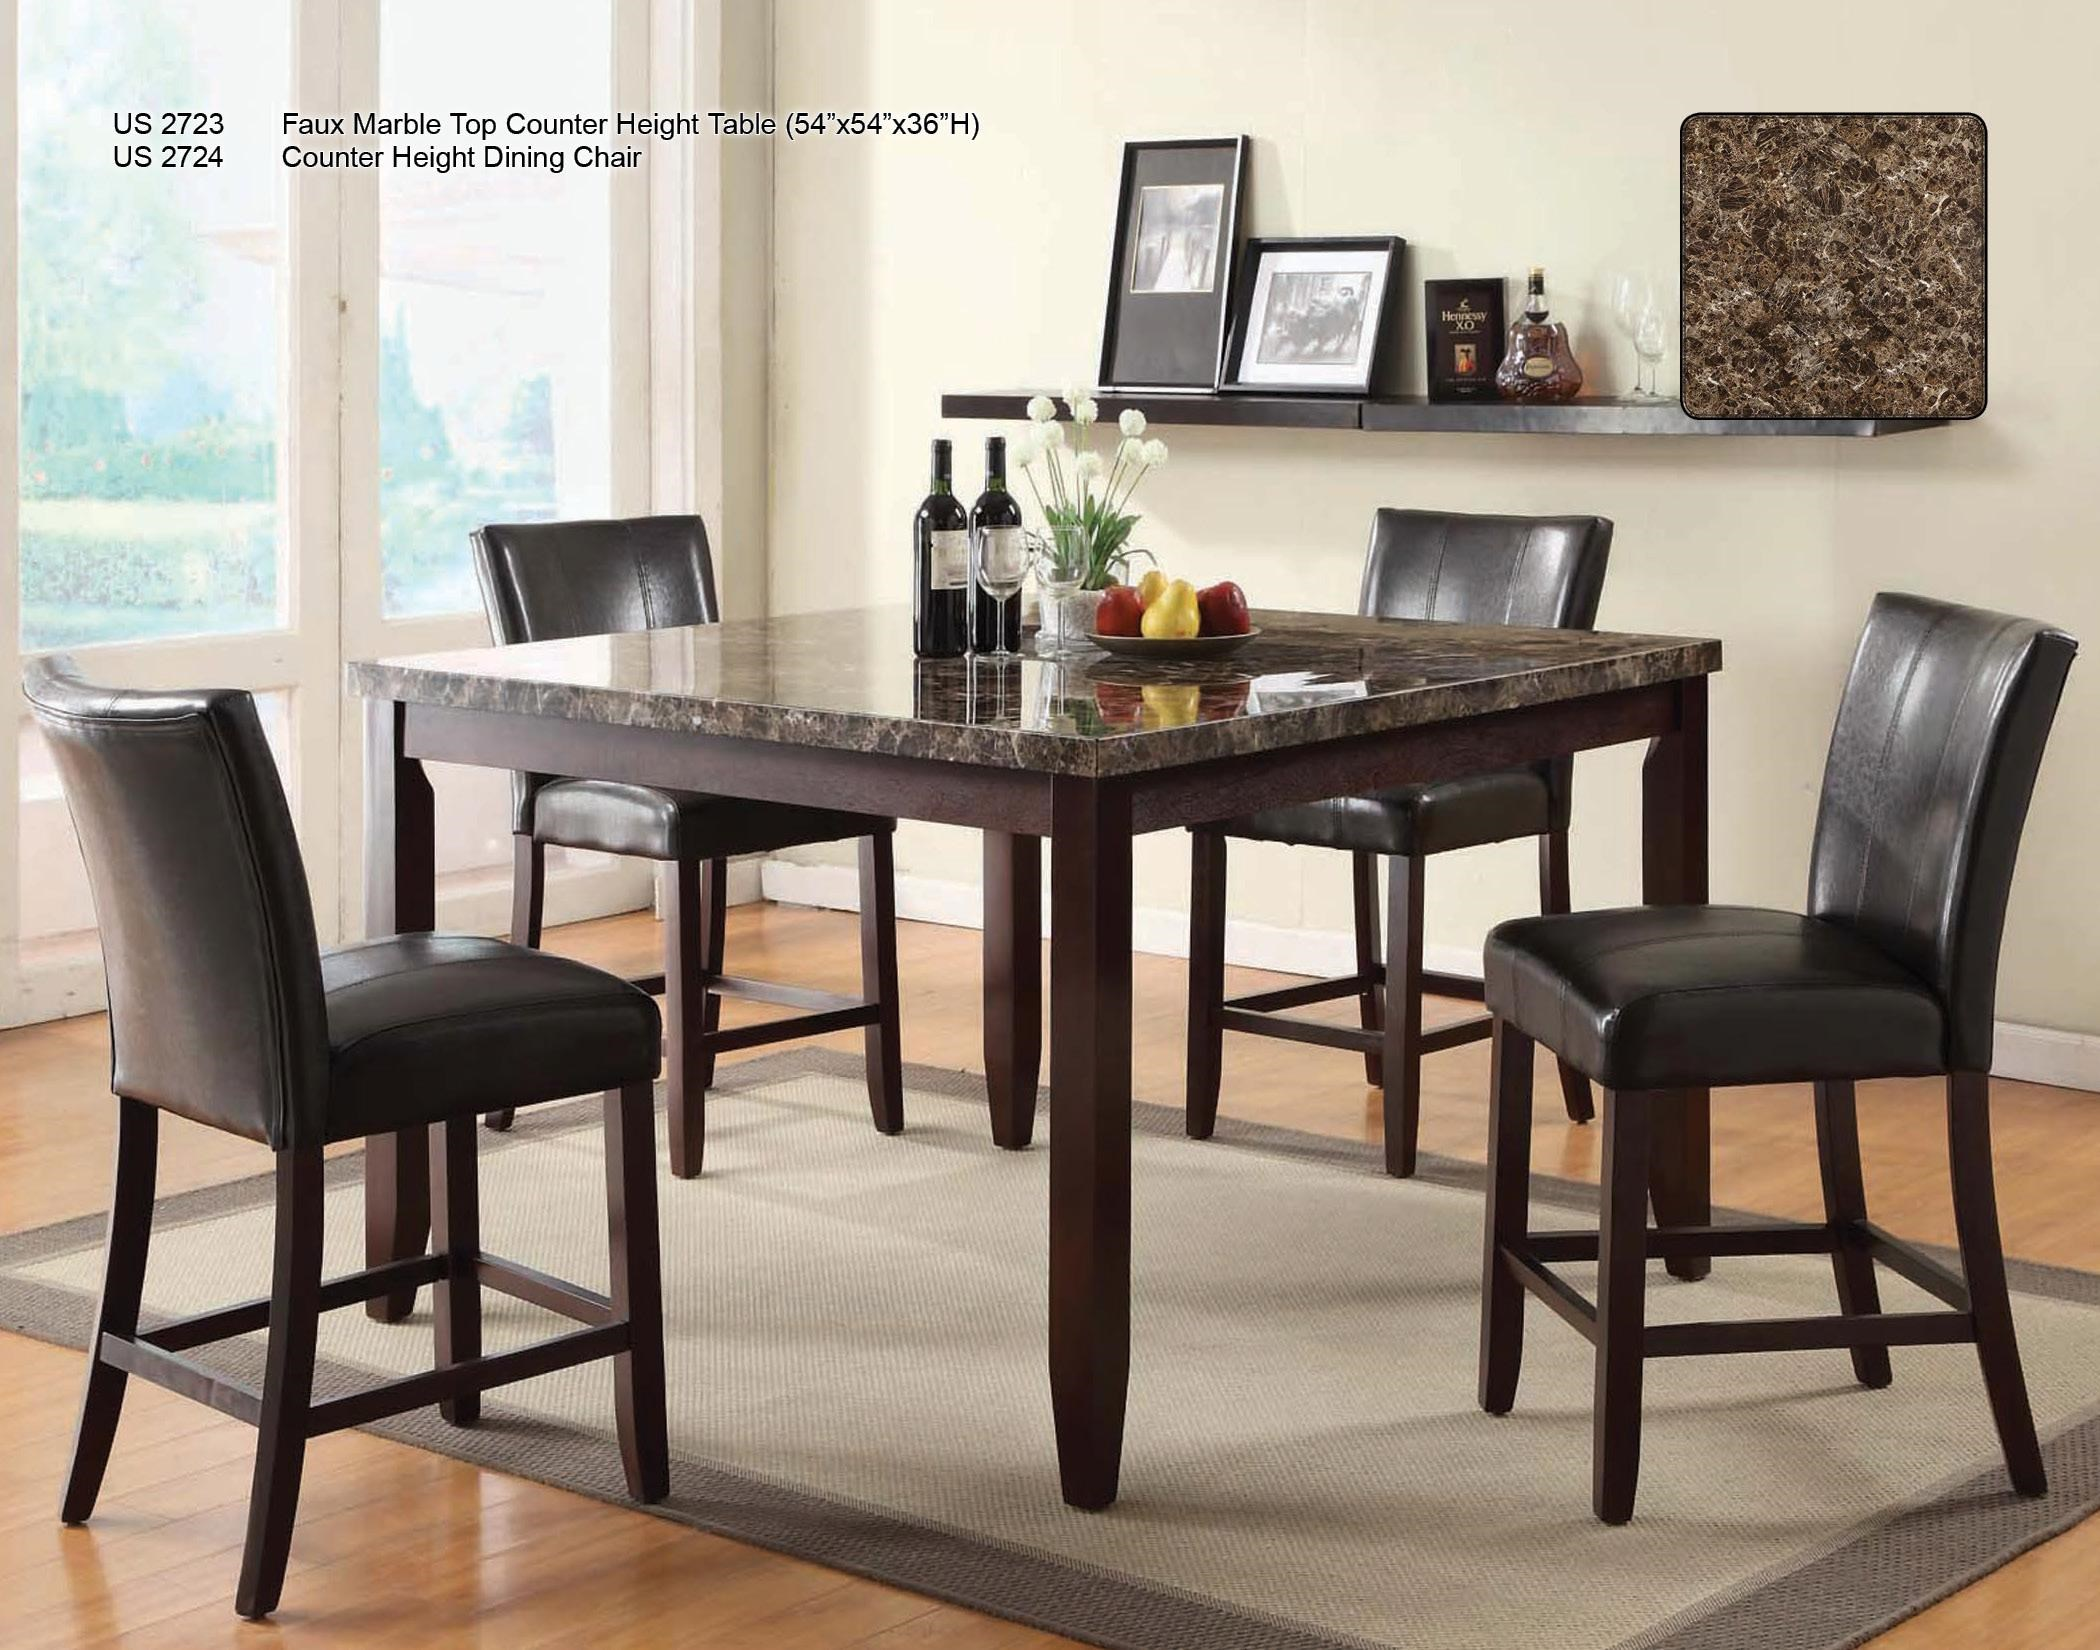 ... U.S. Furniture Inc 2720 DinetteCounter Height Dining Table Shown With Counter  Height Chairs